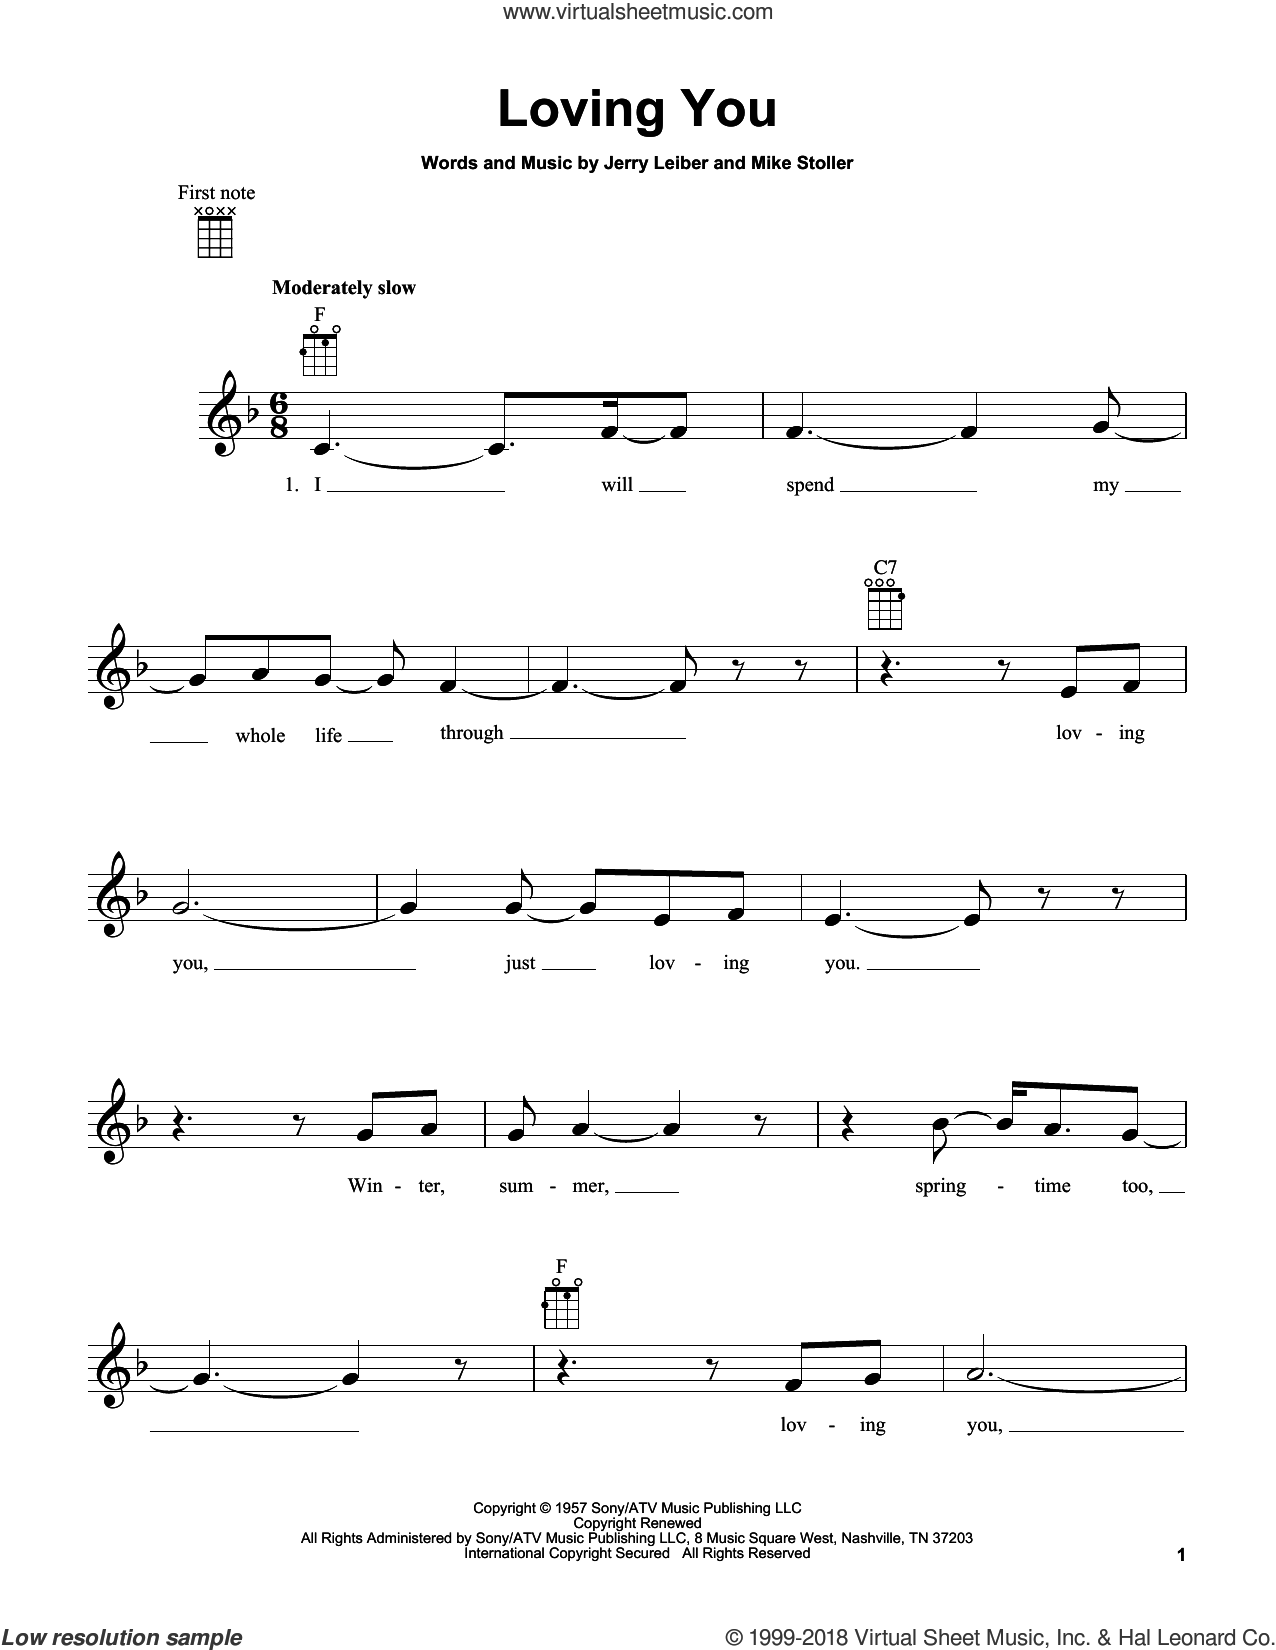 Loving You sheet music for ukulele by Mike Stoller, Elvis Presley and Jerry Leiber. Score Image Preview.